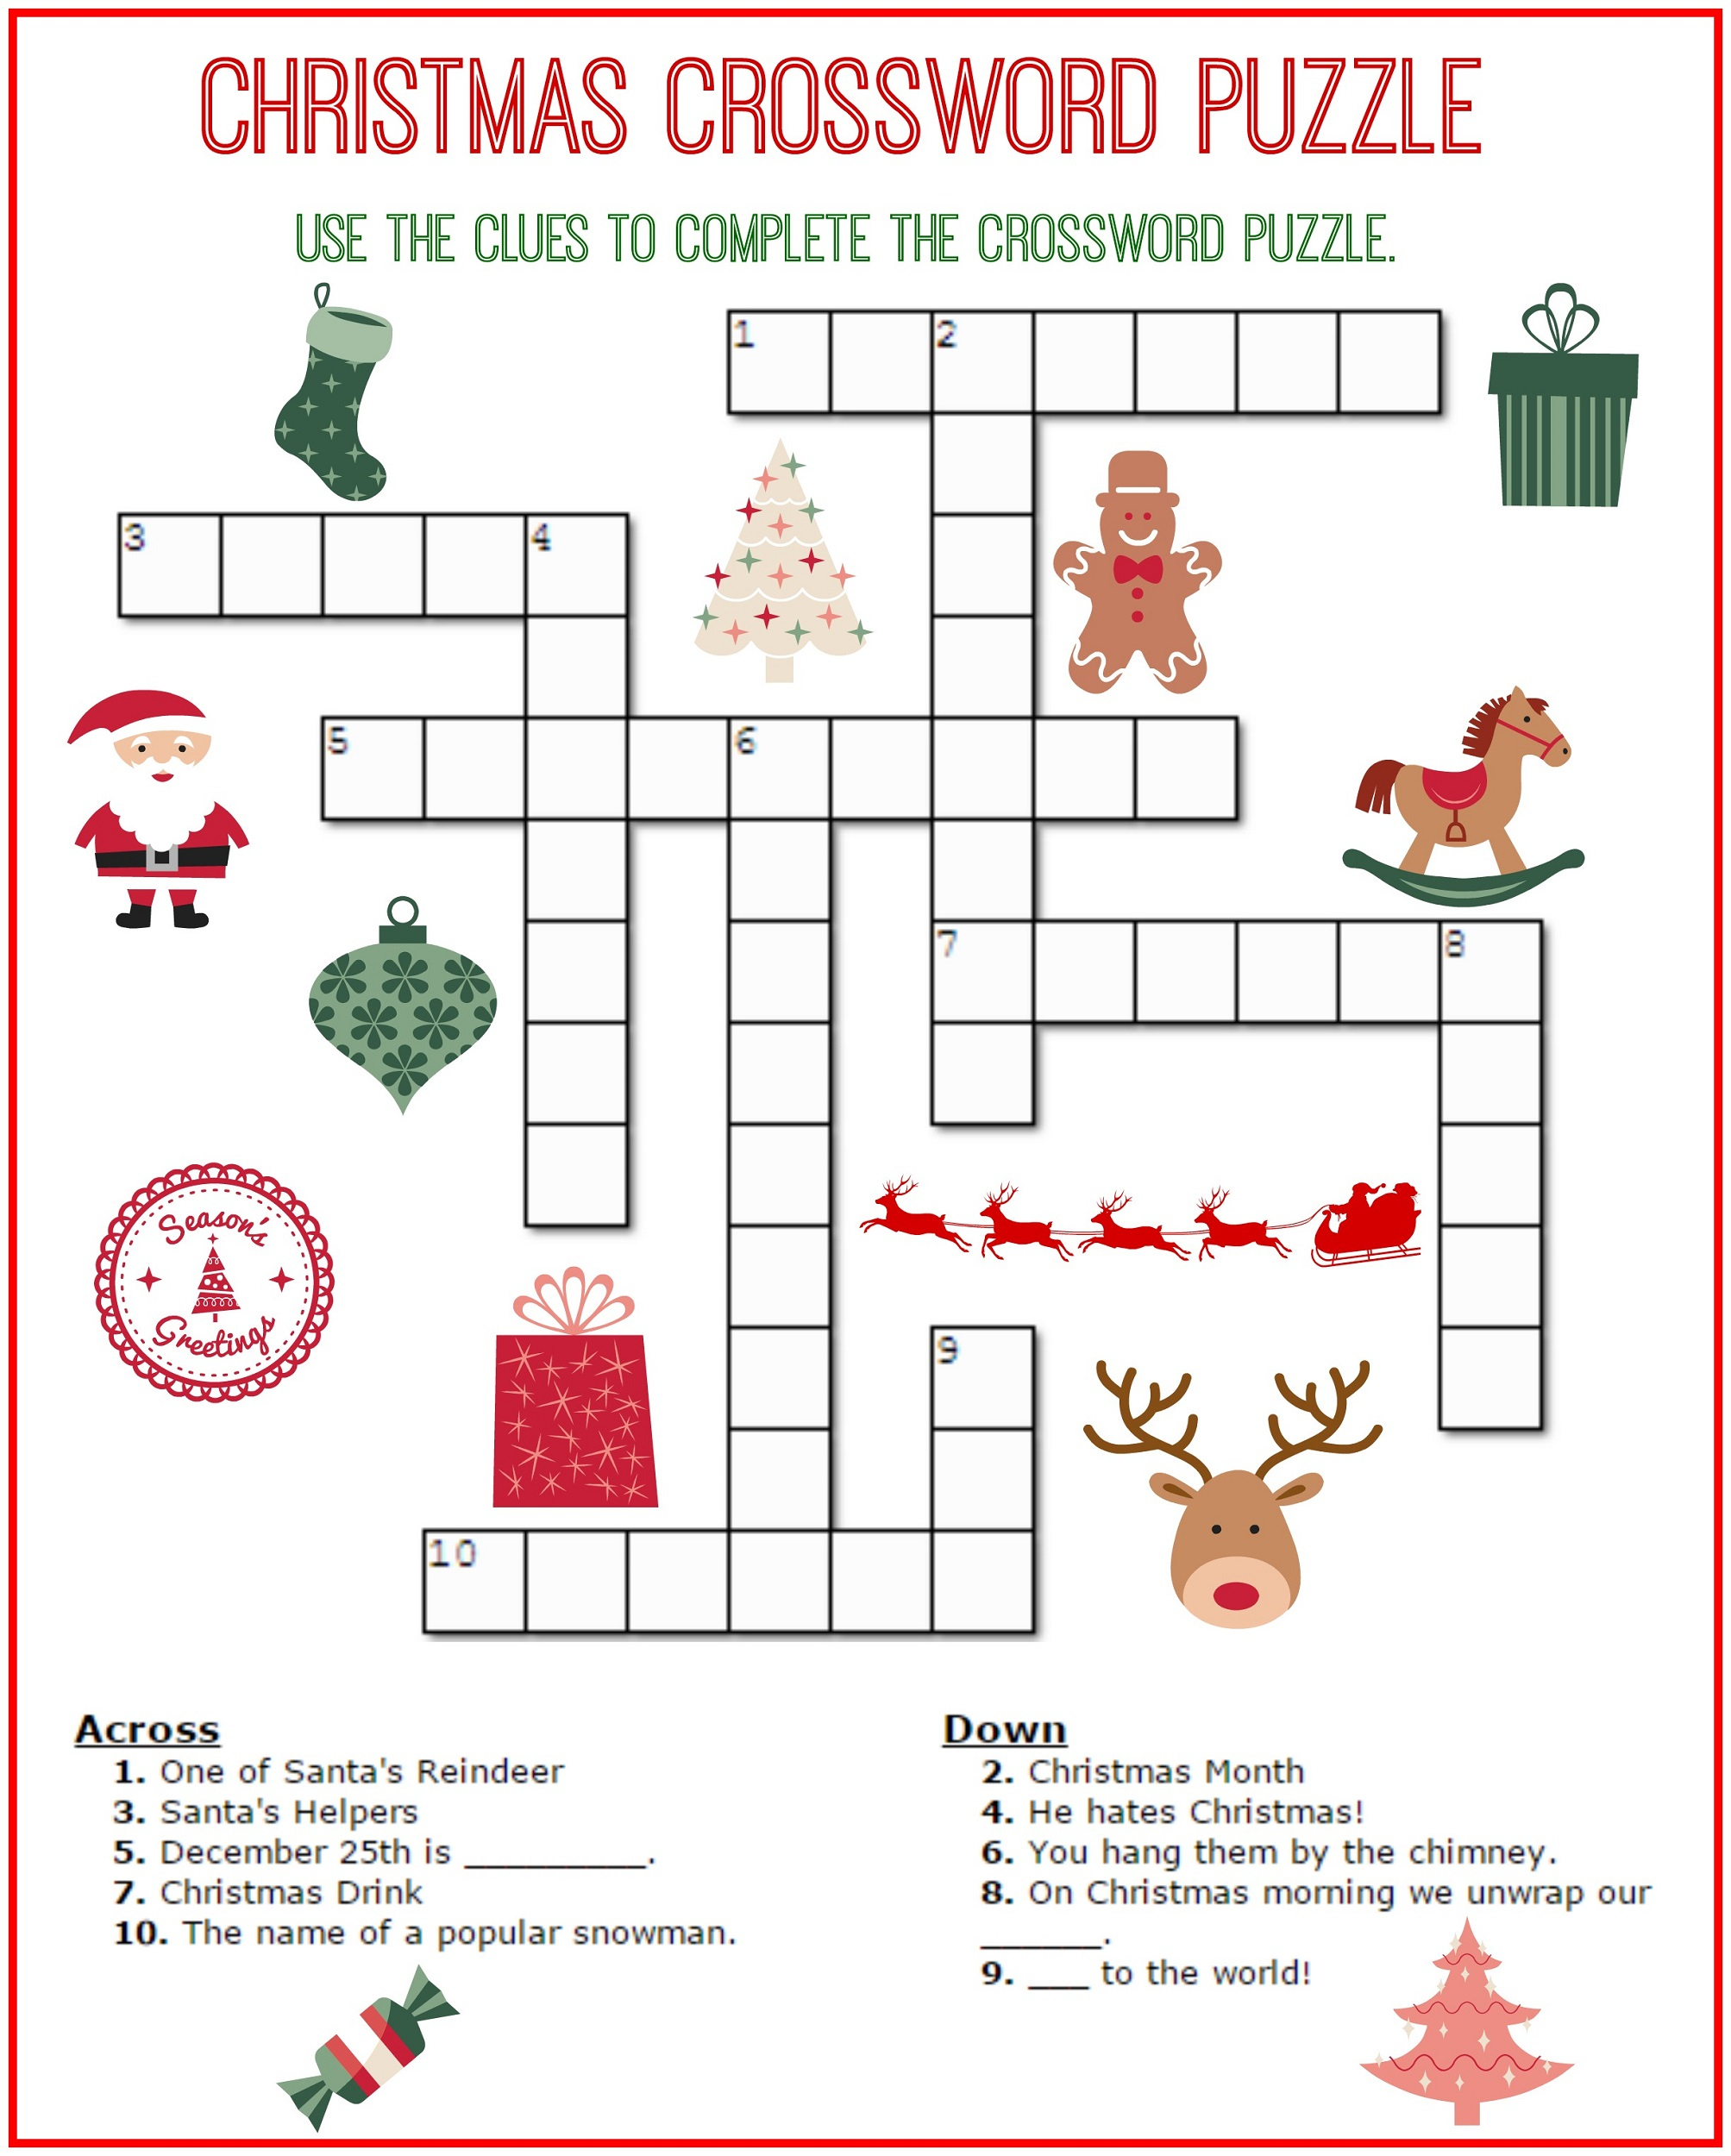 Crossword Puzzle Kids Printable 2017 | Kiddo Shelter - Free Easy - Printable Crossword Puzzles For 6 Year Olds